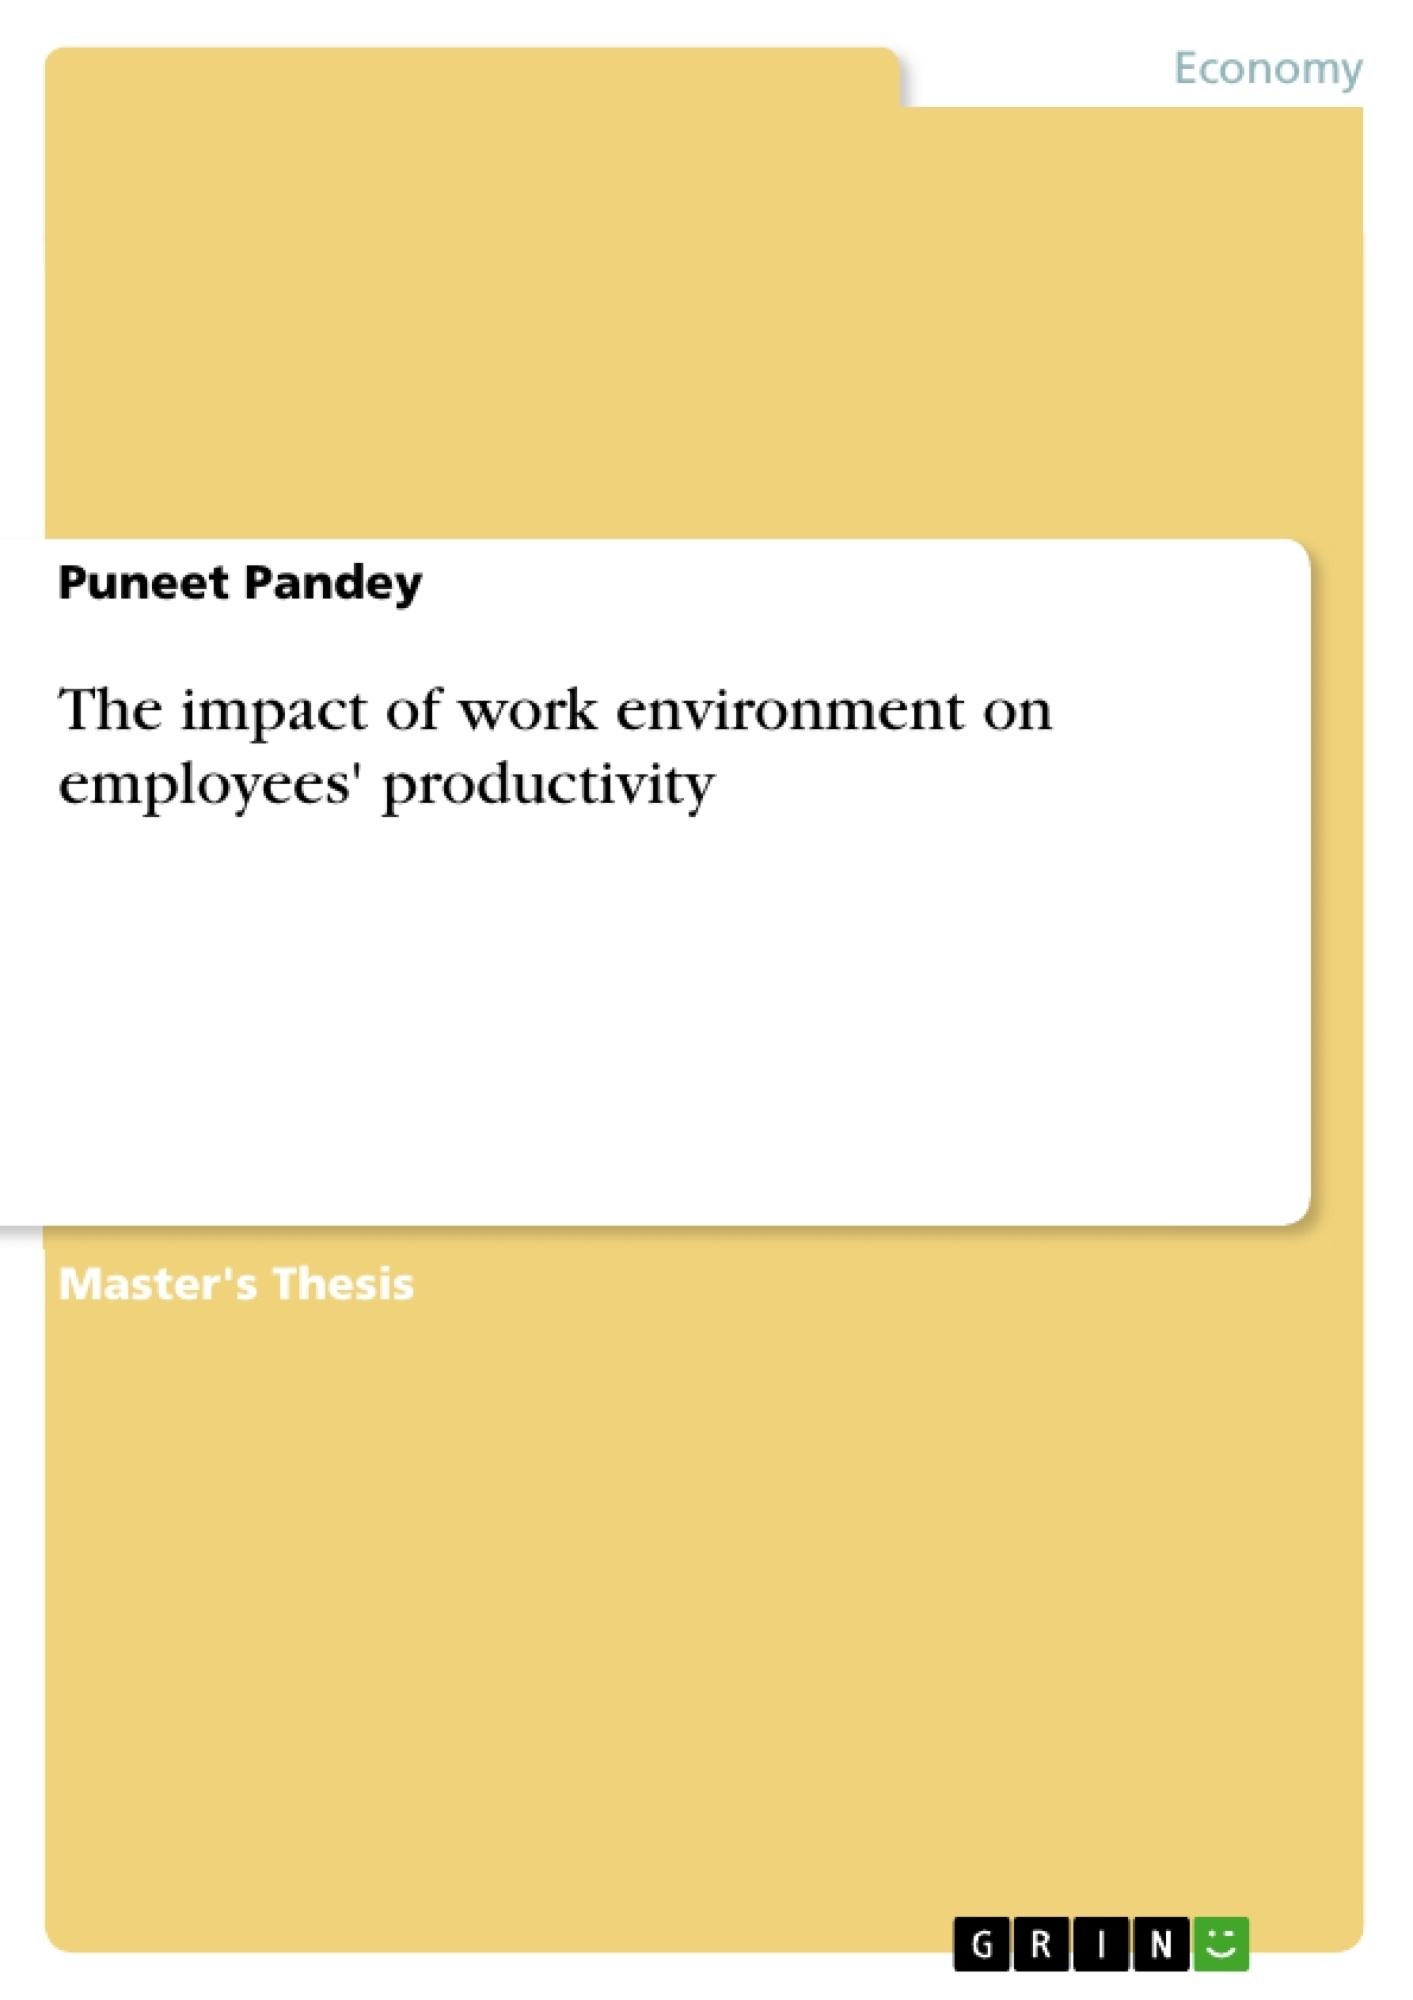 GRIN - The impact of work environment on employees' productivity